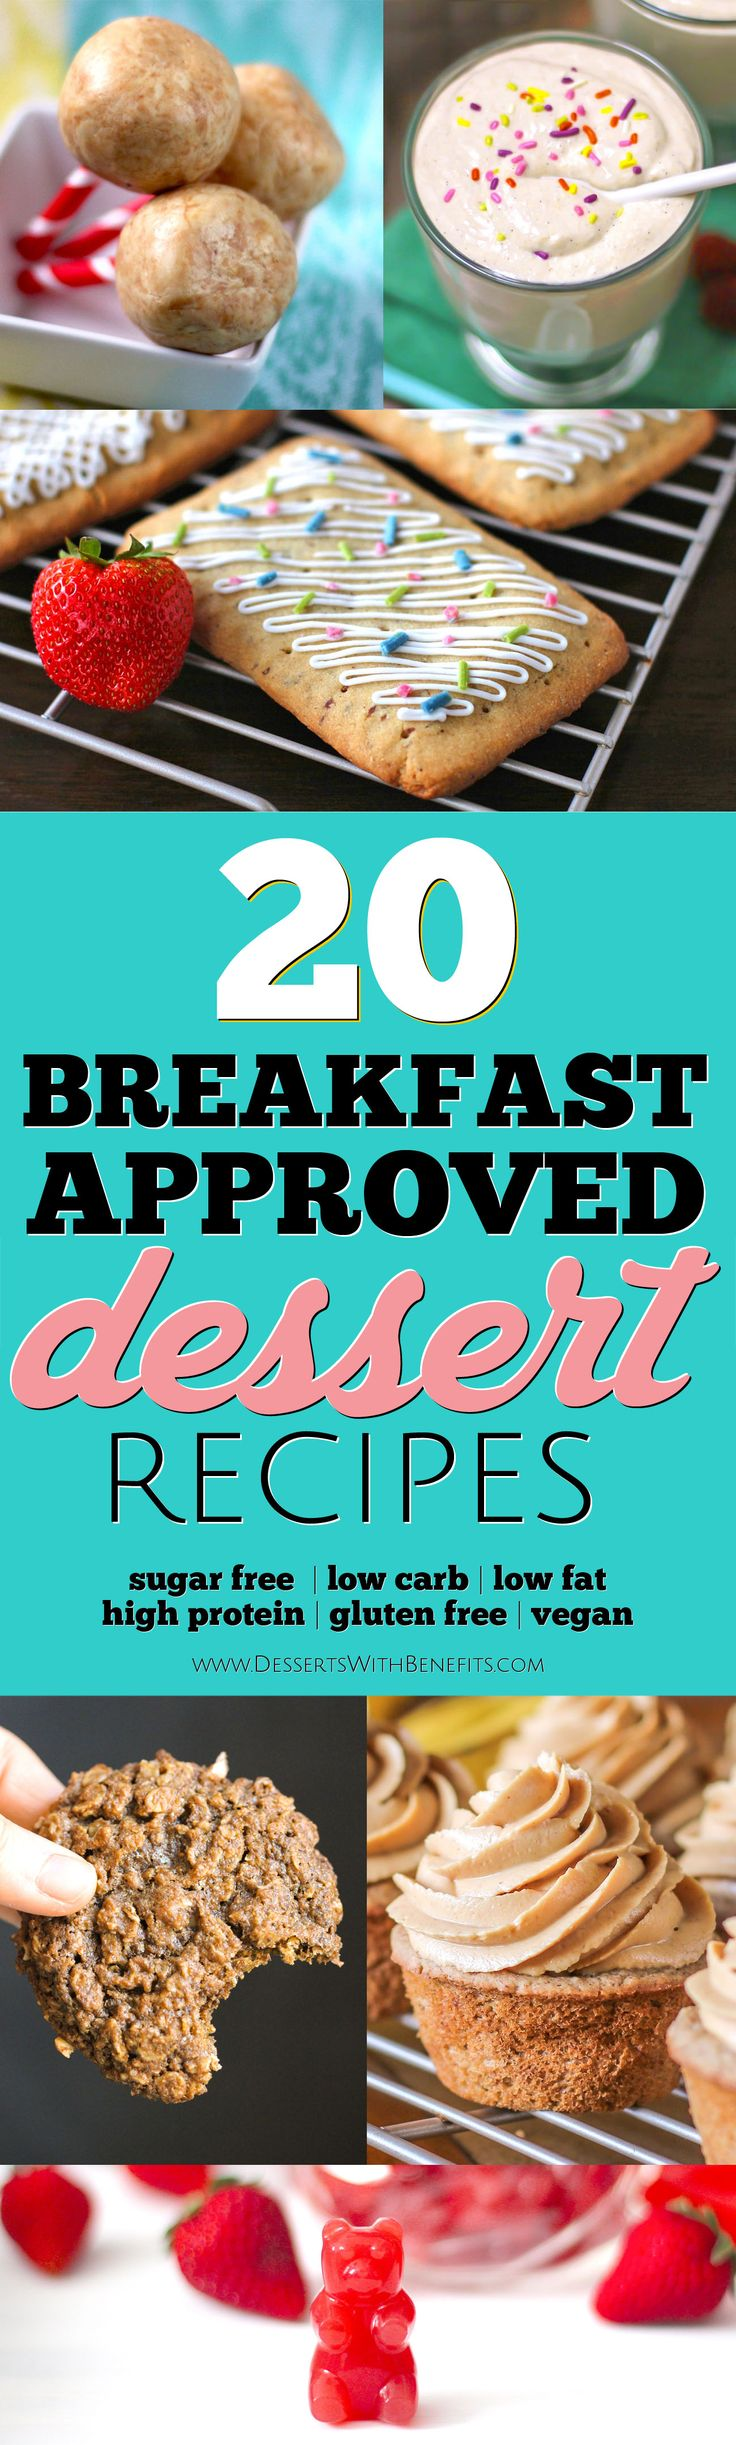 20 Breakfast-Approved Healthy Dessert Recipes -- if you're the type of person who needs to eat something sweet in the morning, this roundup was MADE for you! From Fudge Brownies to Cake Batter Dip to Mocha Mousse to Cookies, with sugar free, low carb, low fat, high protein, high fiber, gluten free, and vegan options.